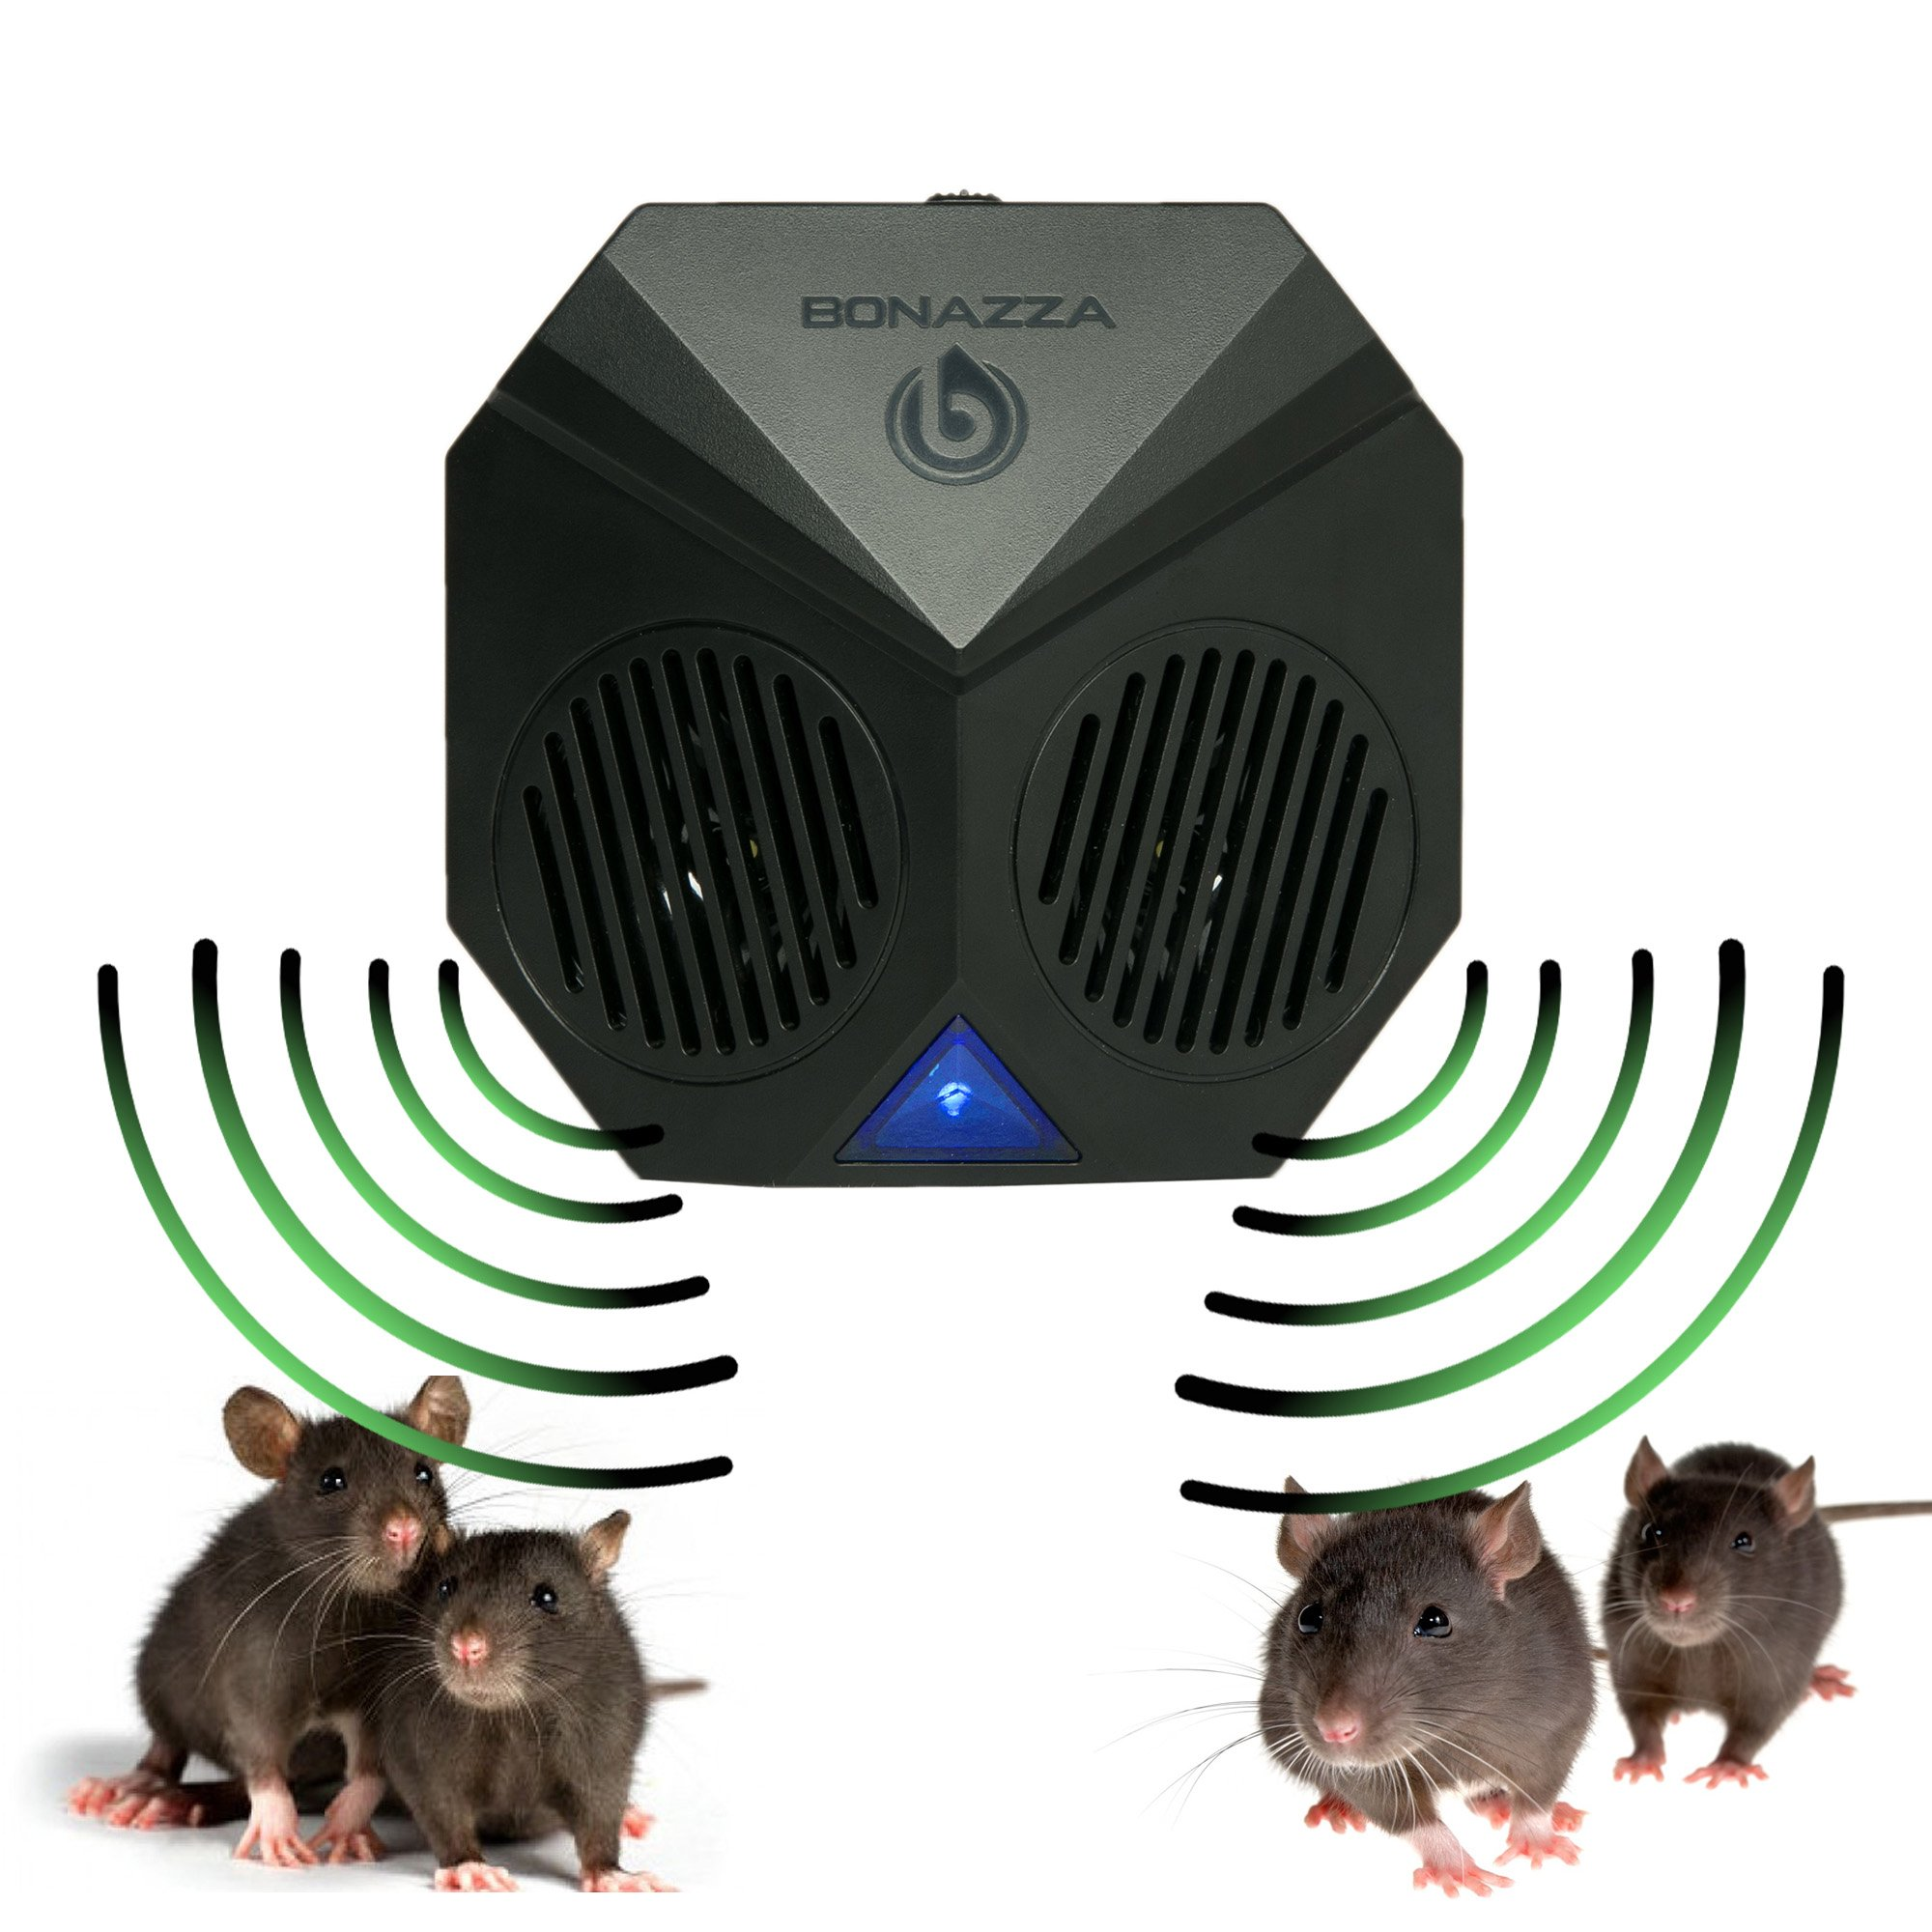 Bonazza Rodent Repellent Ultrasonic For Garages